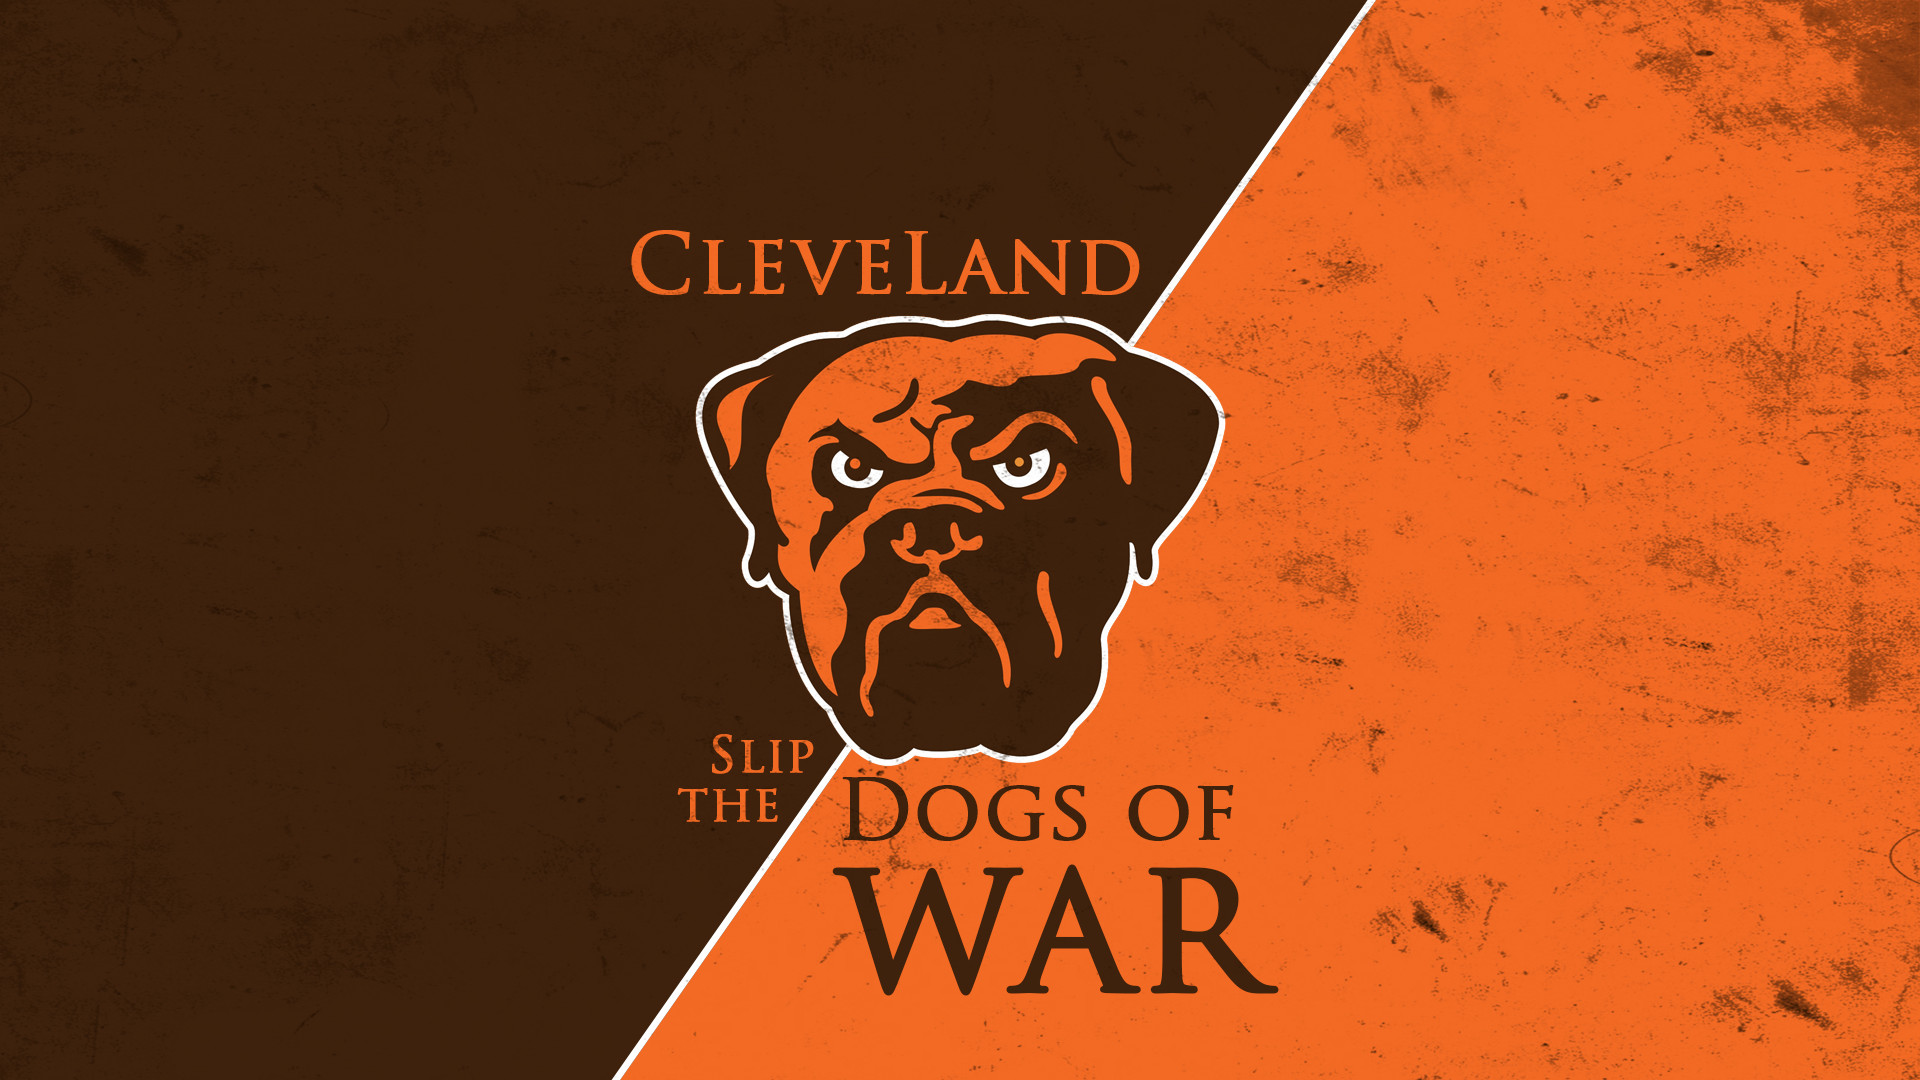 CLEVELAND BROWNS nfl football rl wallpaper 1920x1080 157716 1920x1080